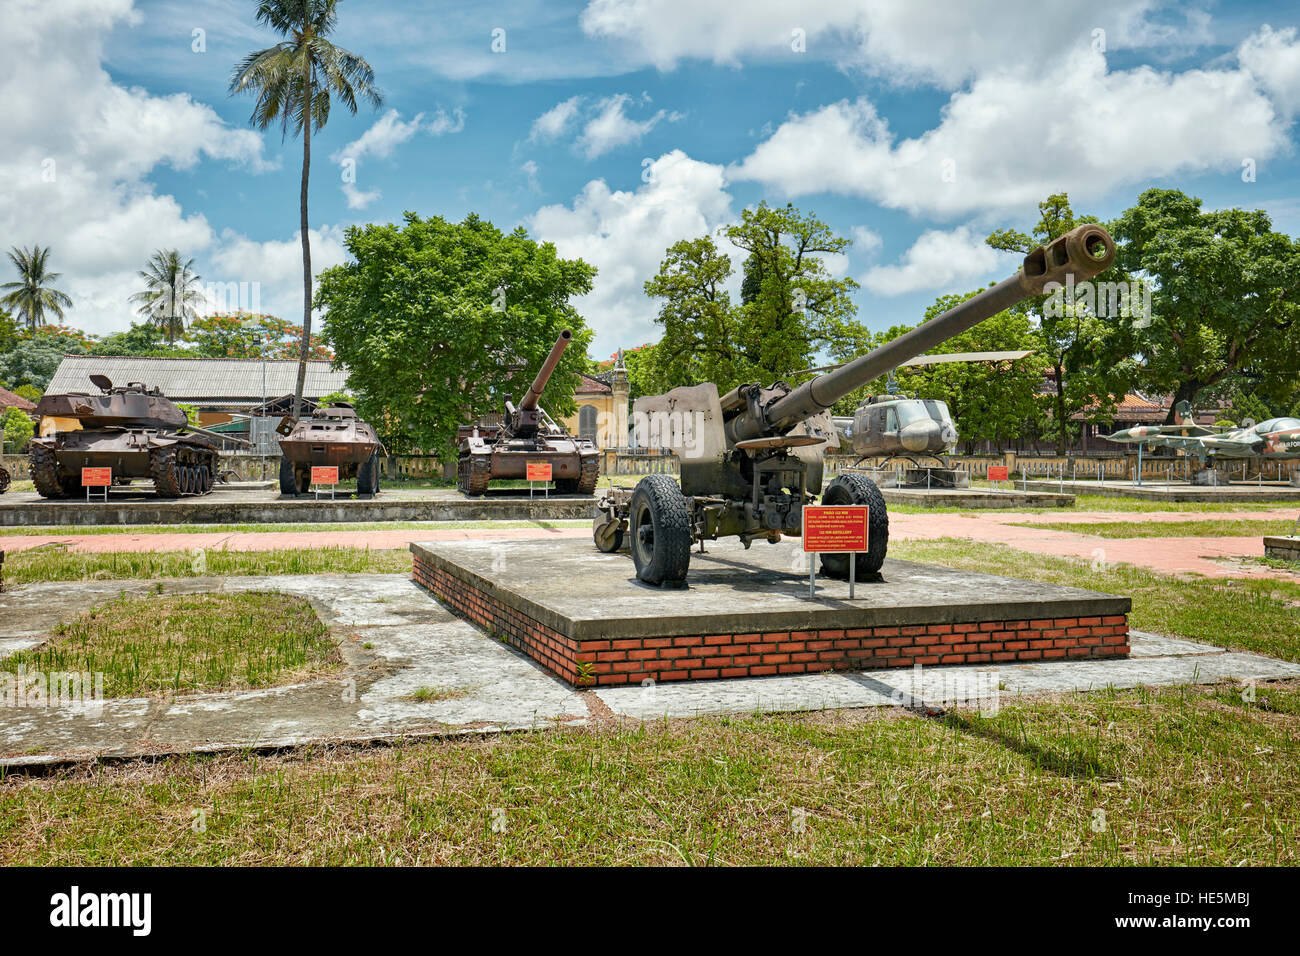 122-mm artillery gun used during Vietnam War. Hue Museum's military collection, Imperial City (The Citadel), - Stock Image